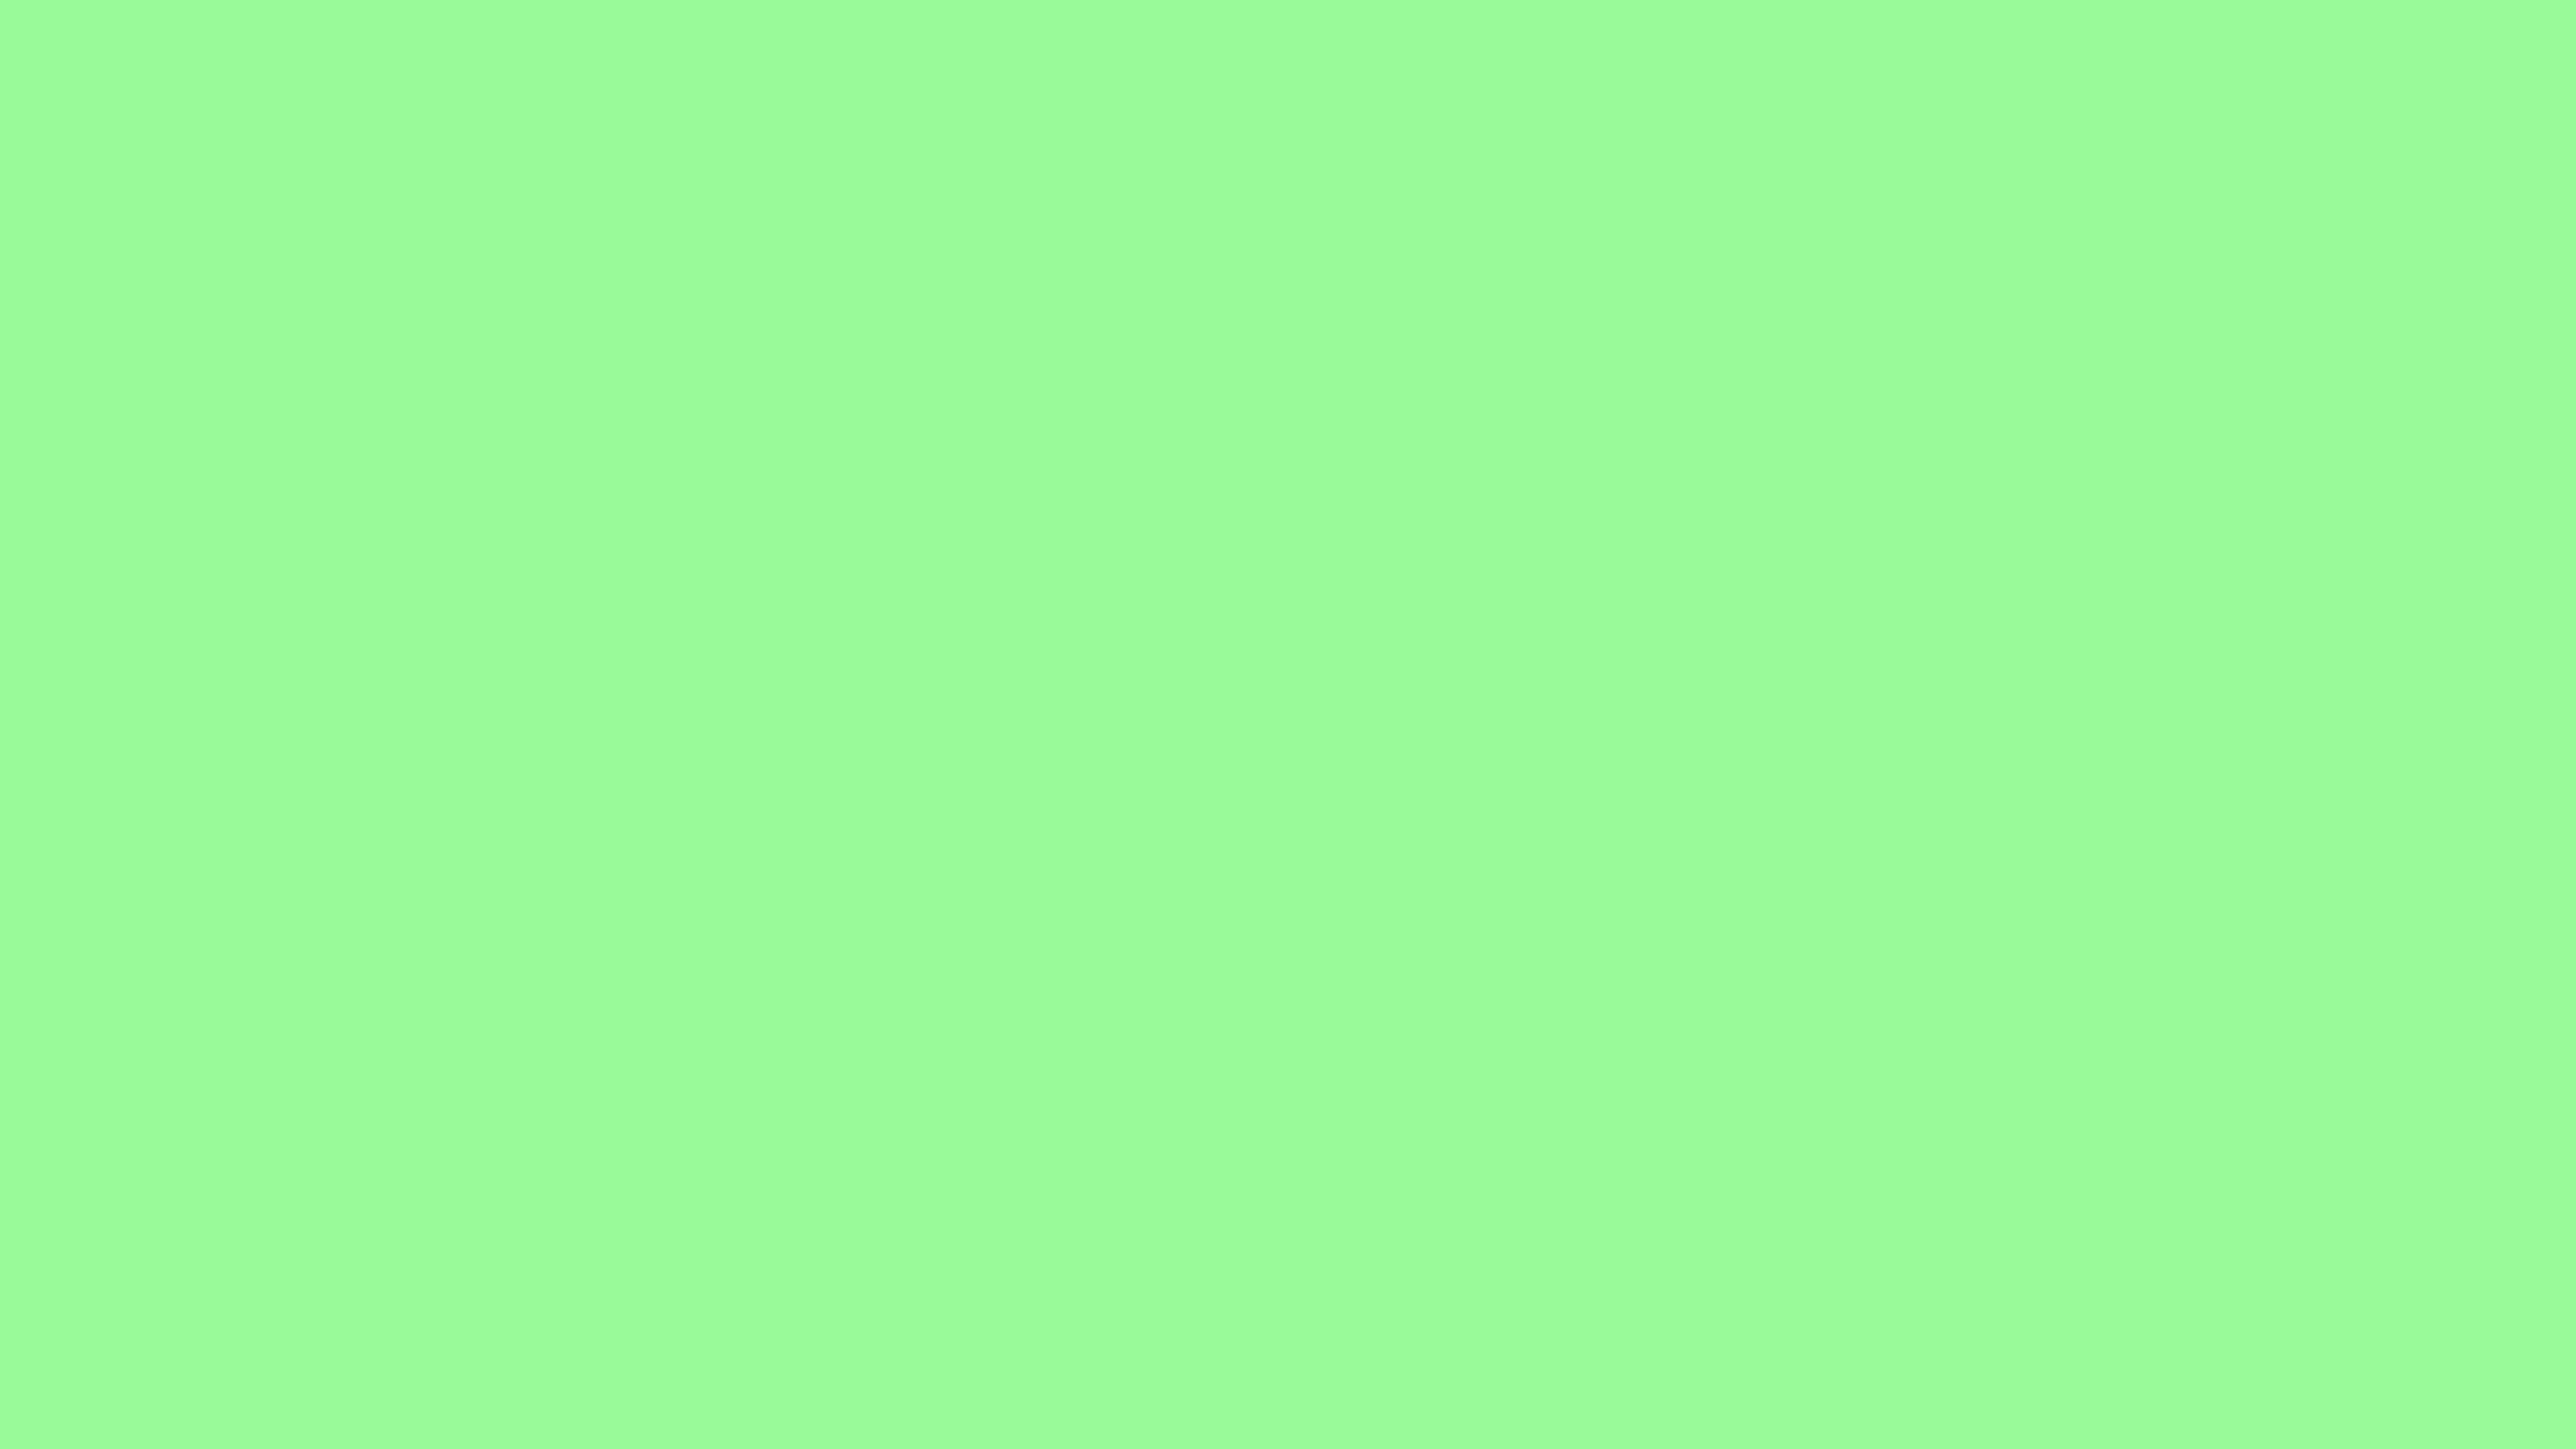 3840x2160 Pale Green Solid Color Background